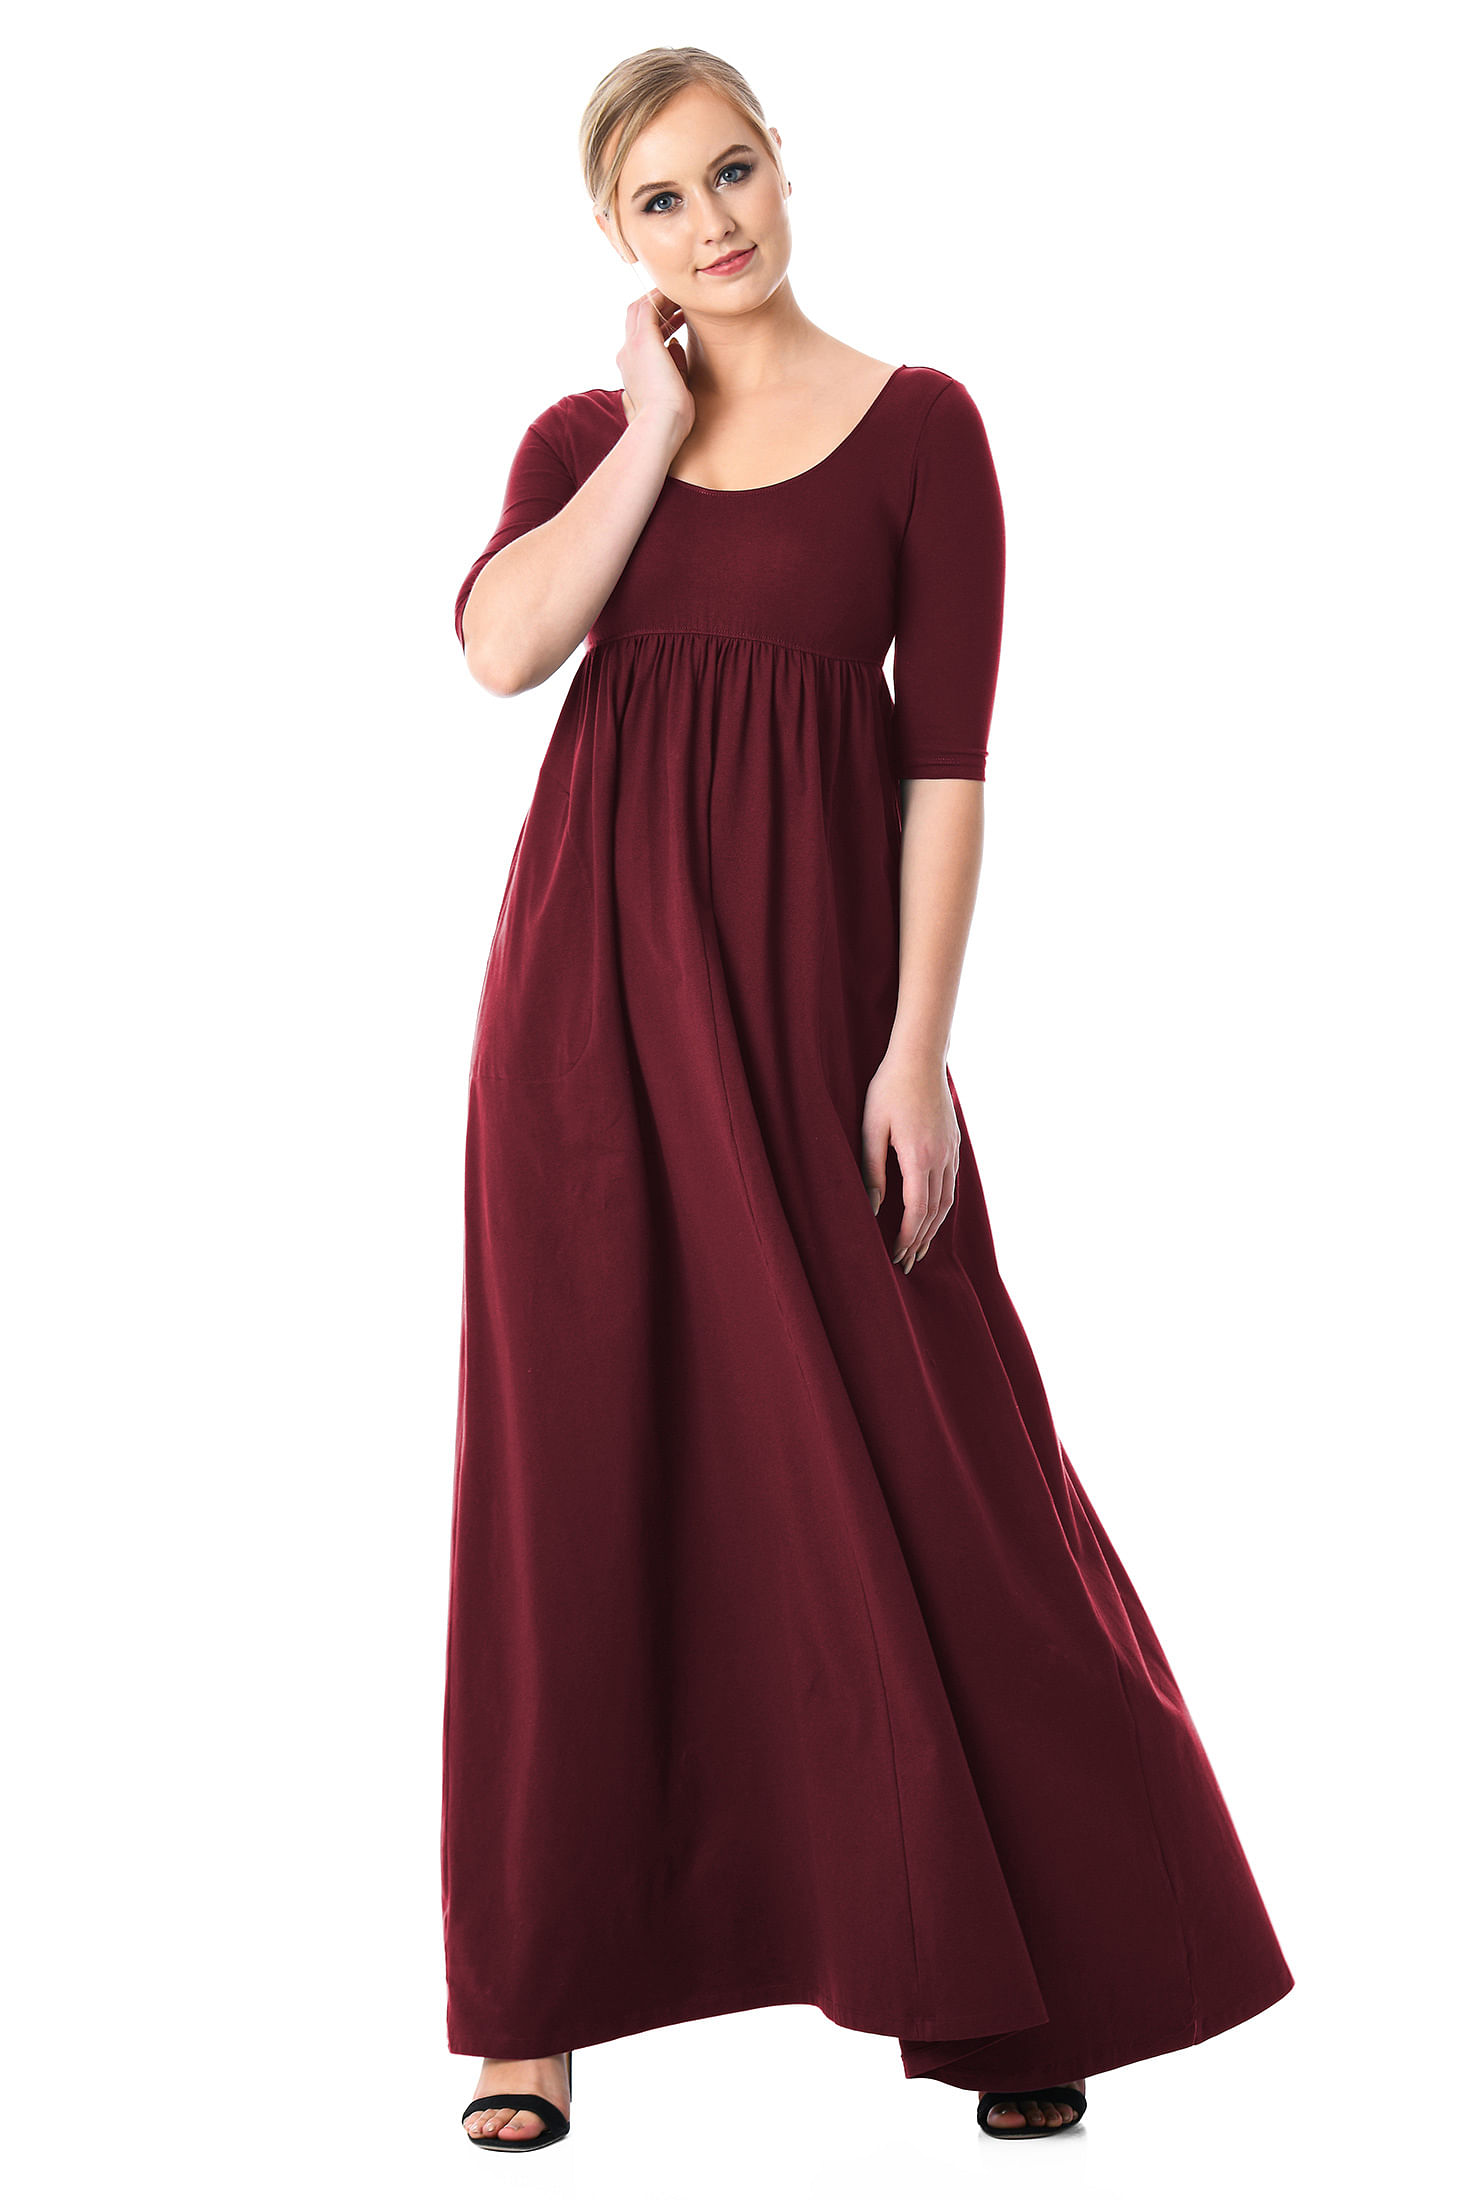 Cotton Knit Empire Maxi Dress by Eshakti